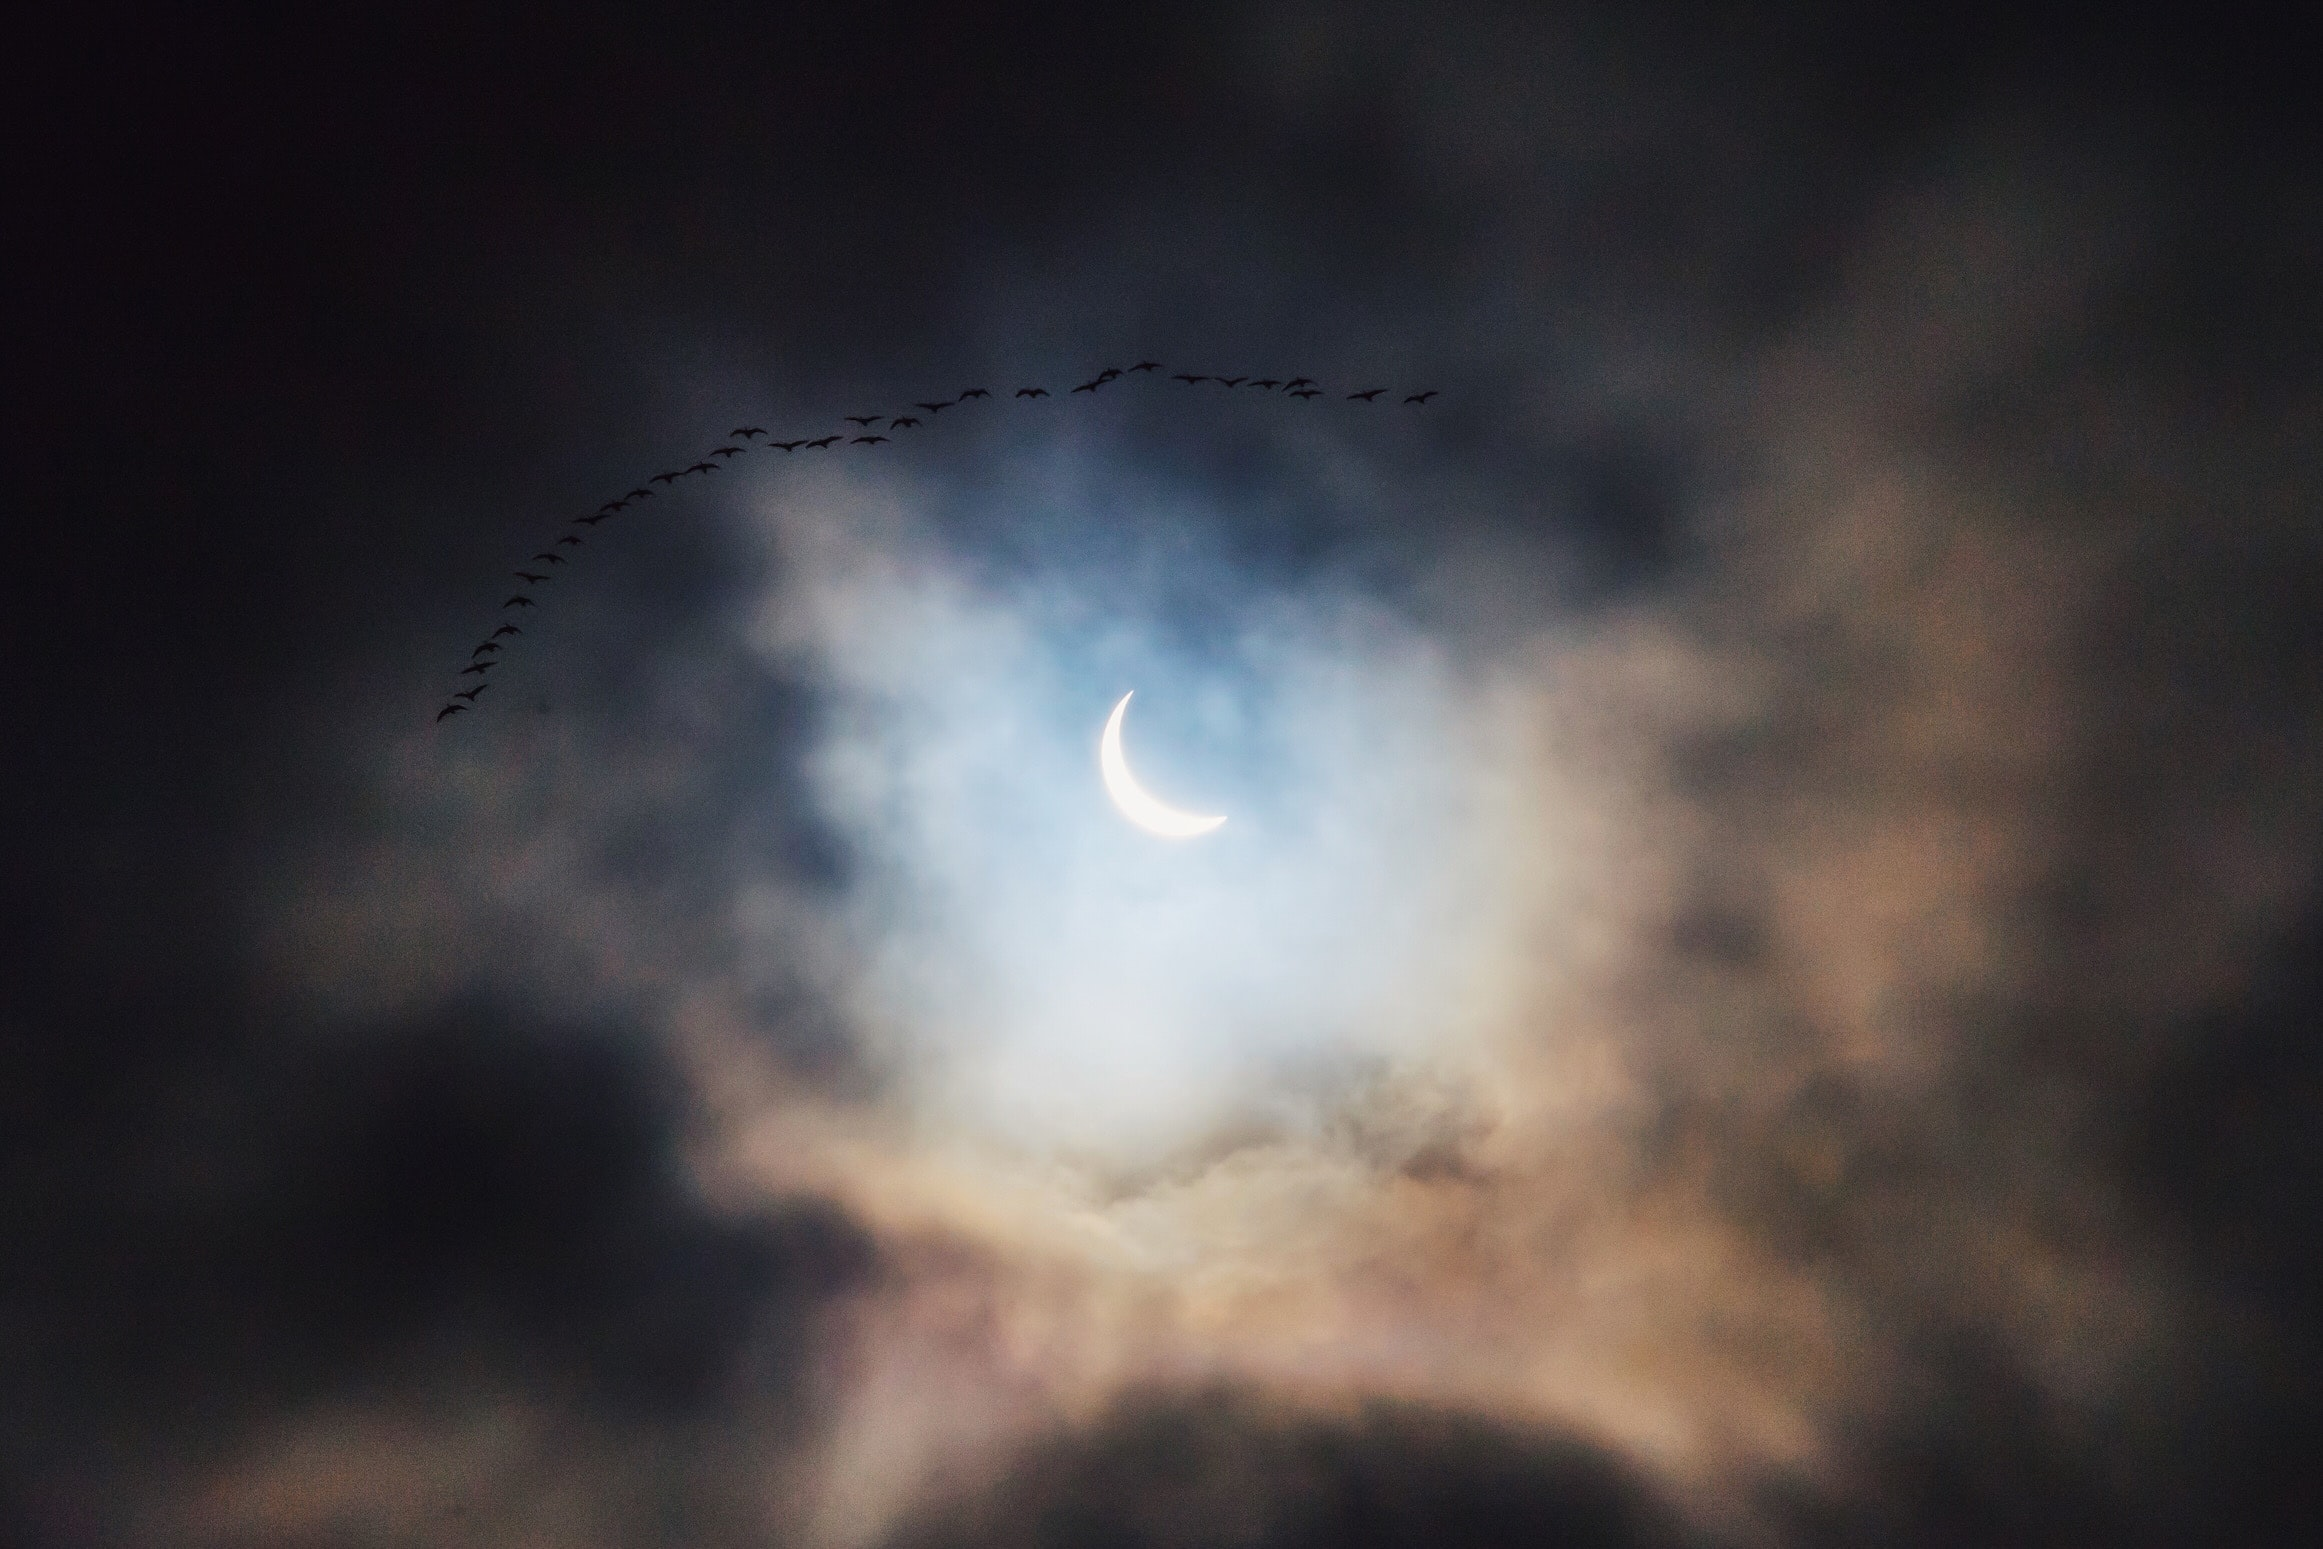 Birds flying across the night sky with a crescent moon peeking between clouds